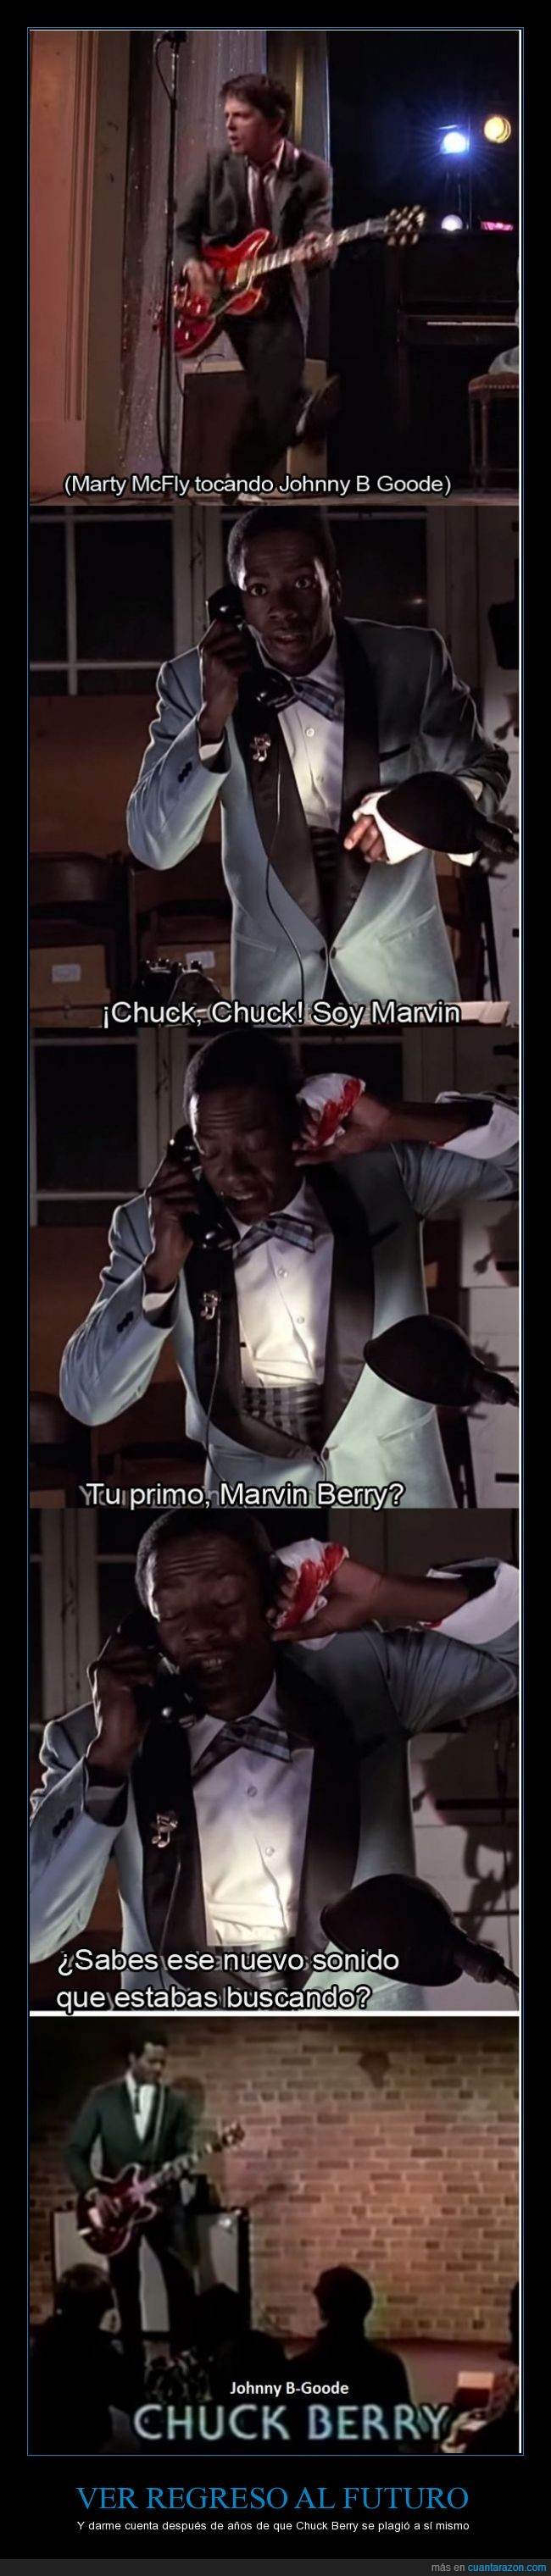 Chuck Berry,https://www.youtube.com/watch?v=S1i5coU-0_Q,Johnny B. Goode,Marty McFly,Michael J. Fox,Primo Marvin Berry,regreso al futuro